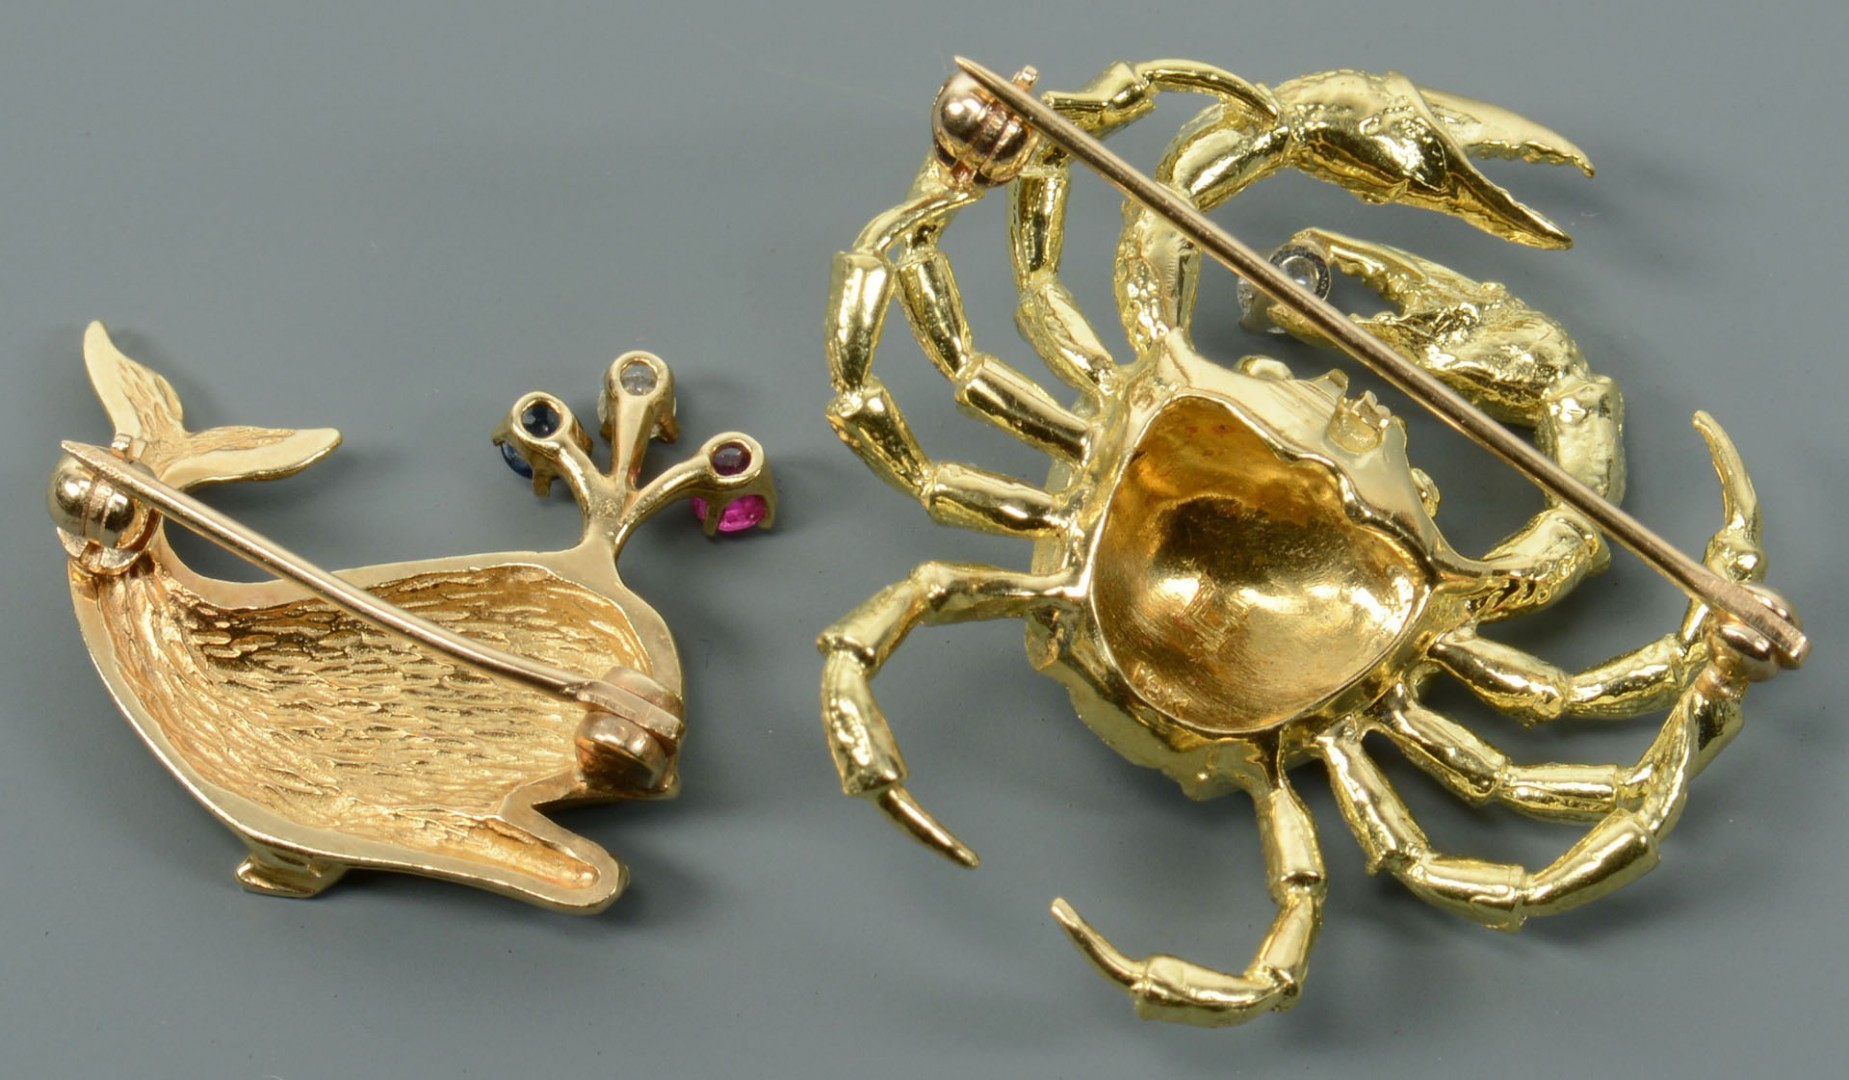 18k Crab and 14k Whale Pins